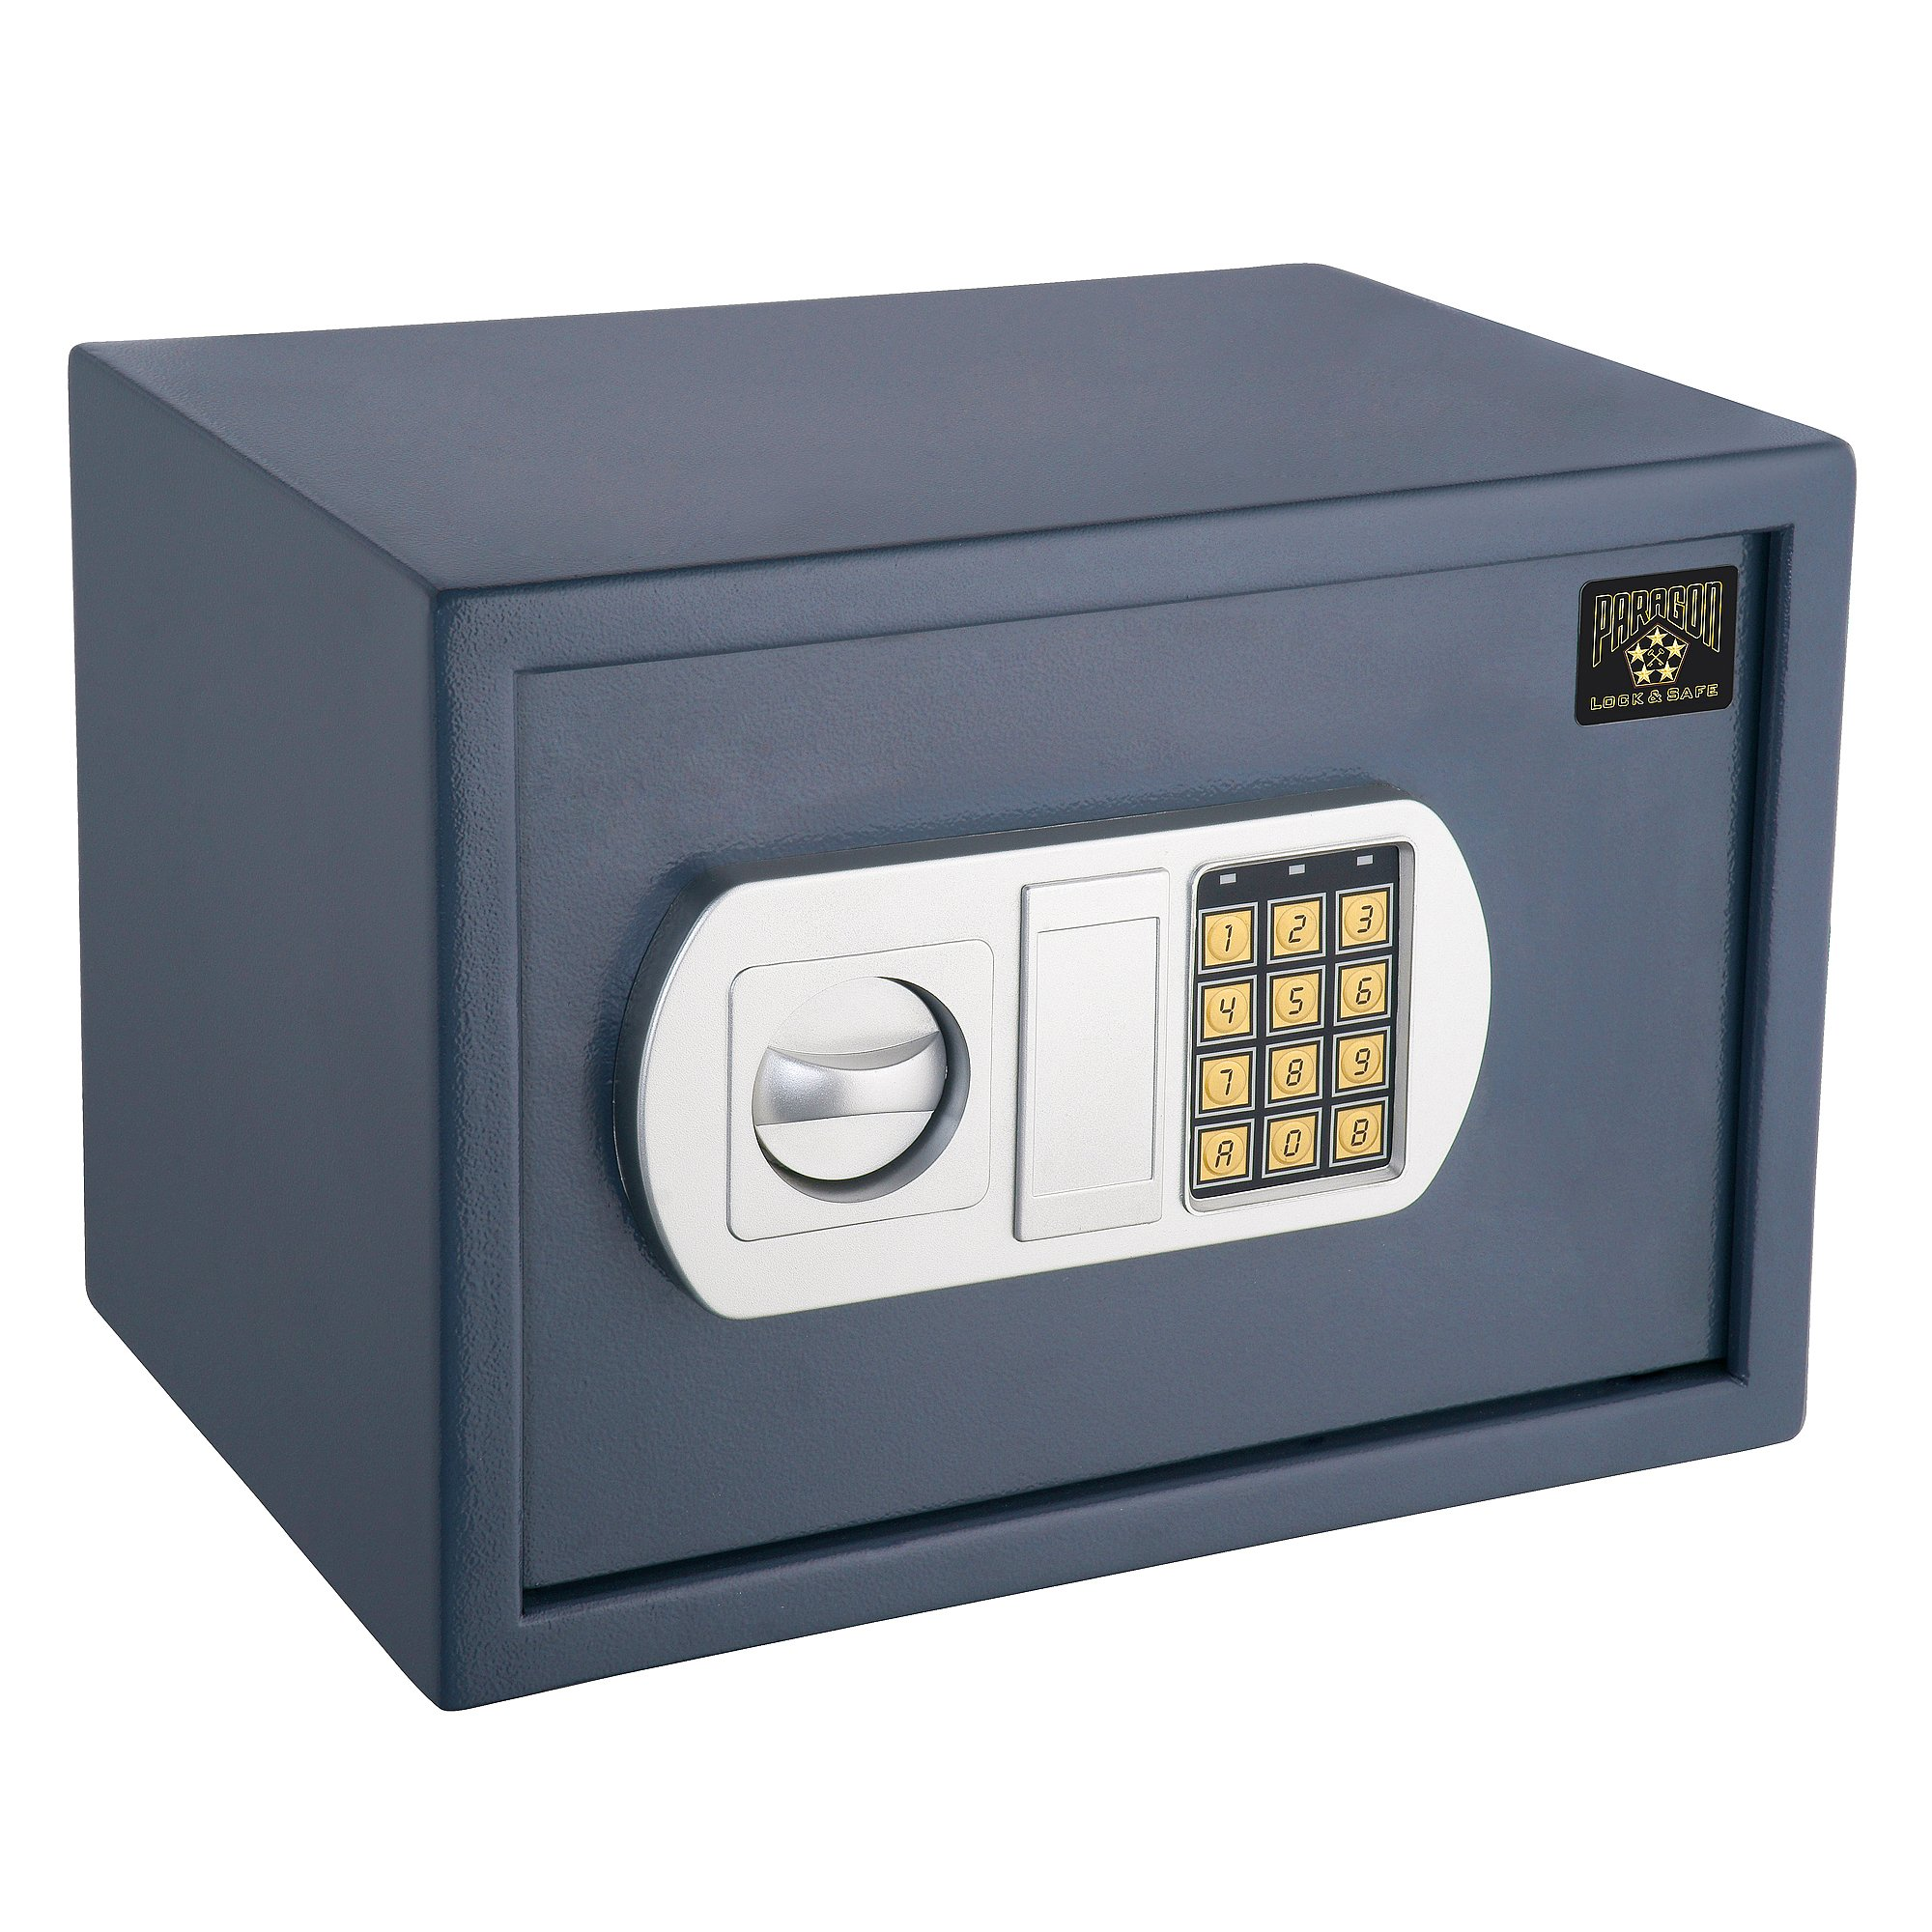 Paragon 7806 ParaGuard Elite .53 CF Lock and Safe for Home or Office